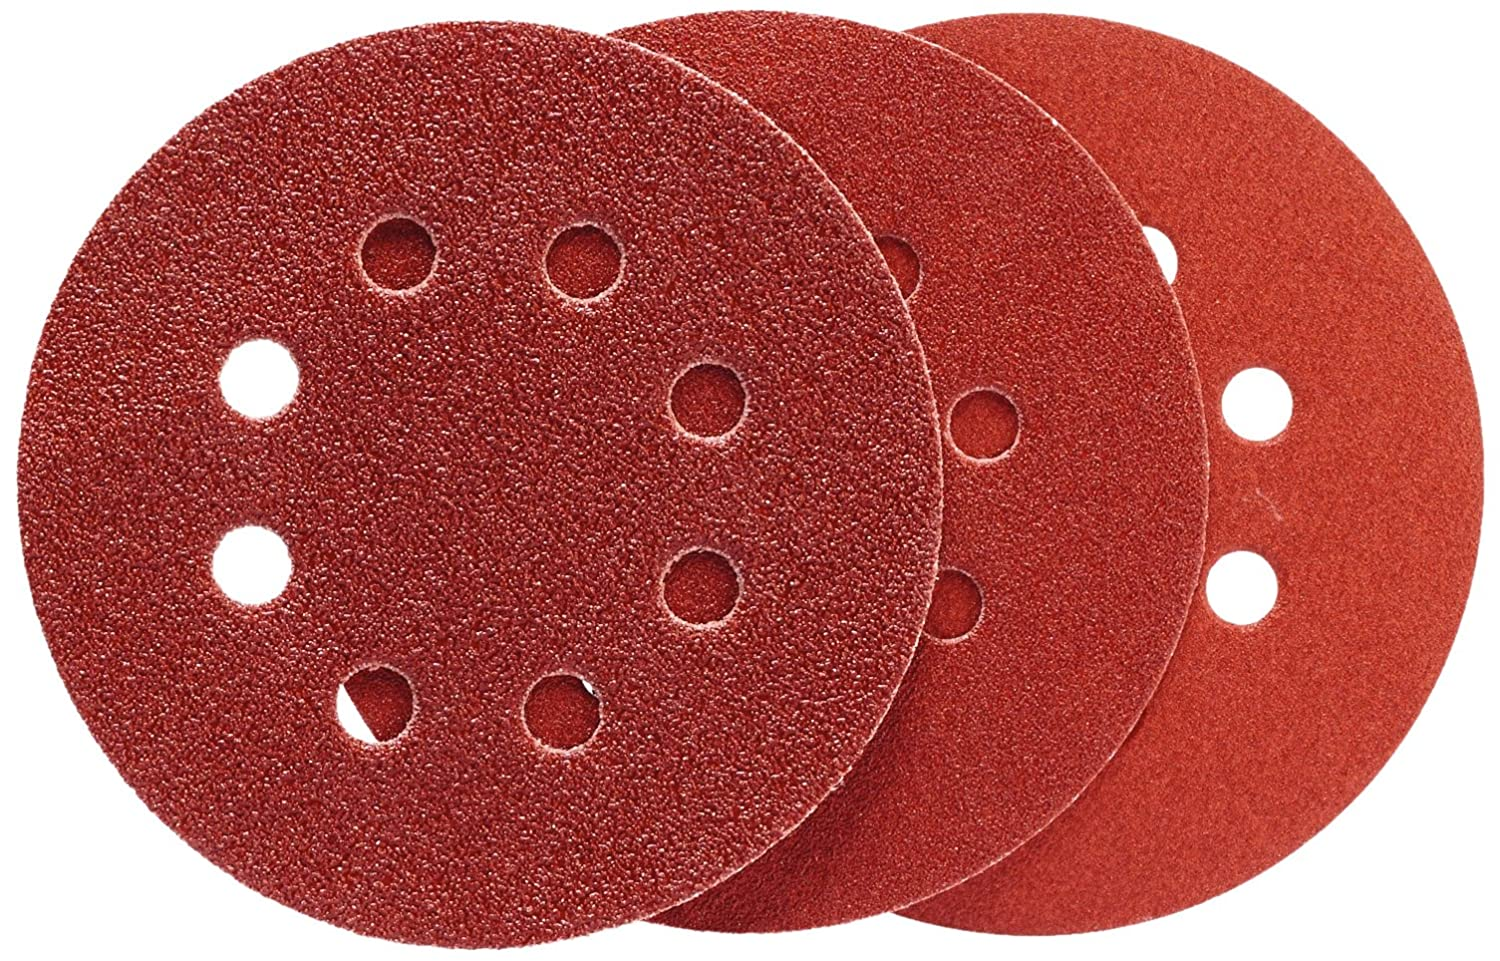 Norton Norgrip Set of 15 Assorted Sanding Discs with 8 Holes, 125 mm 125mm 63642522110